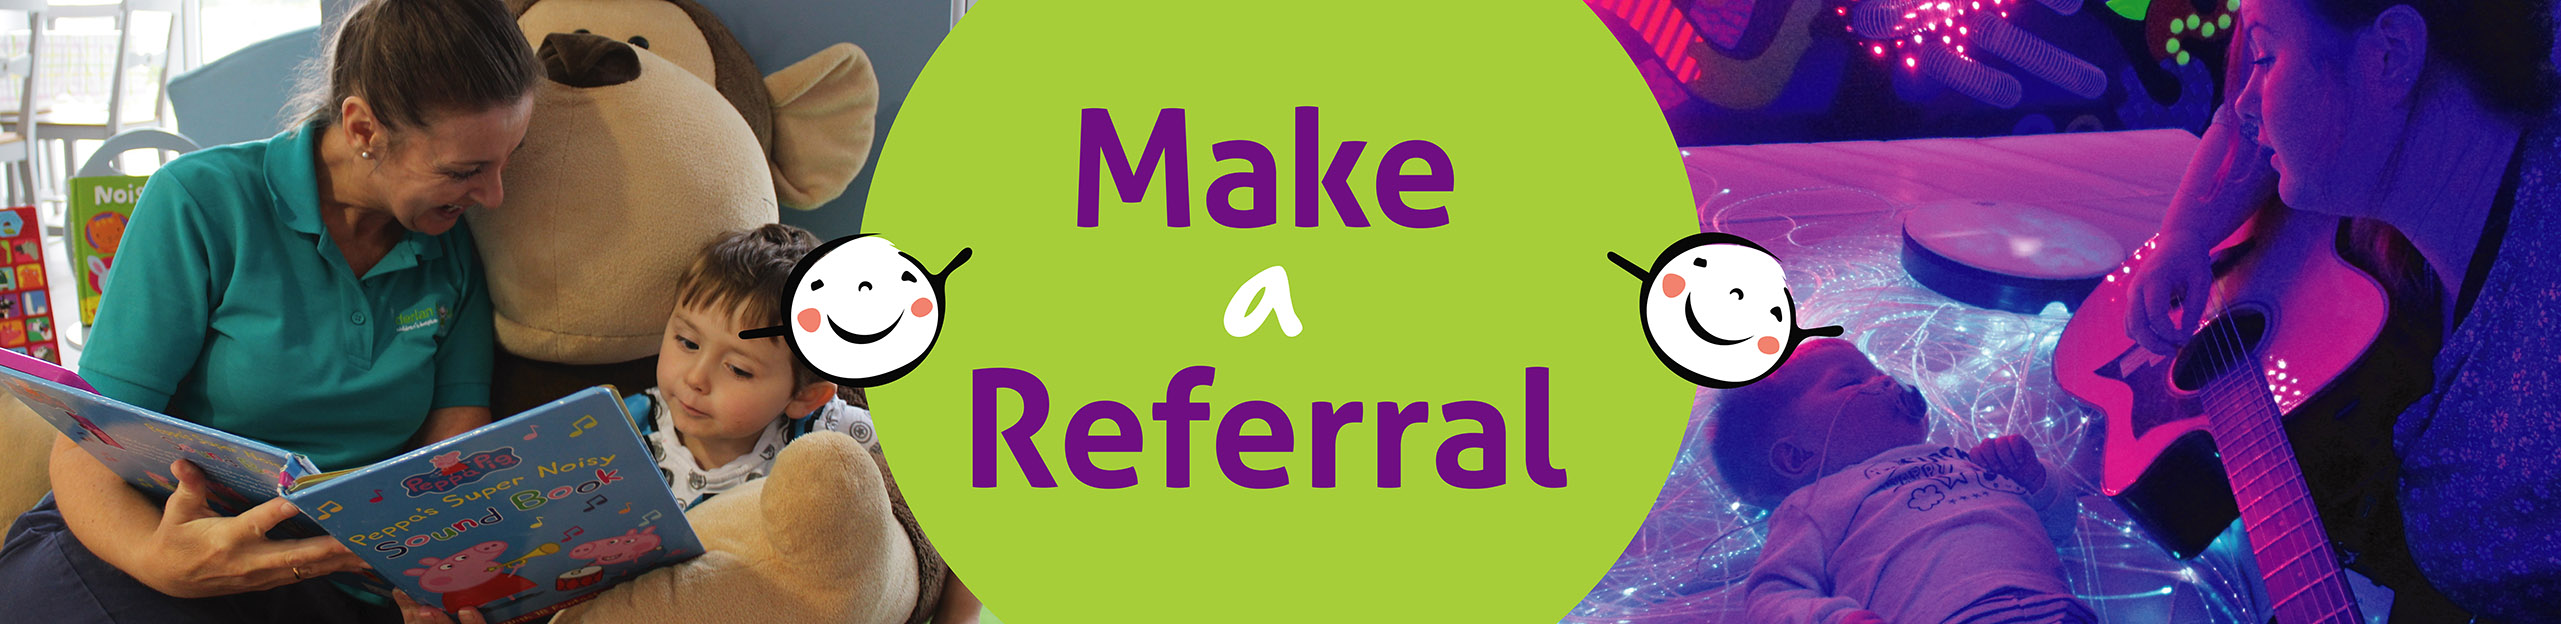 derian house referral page